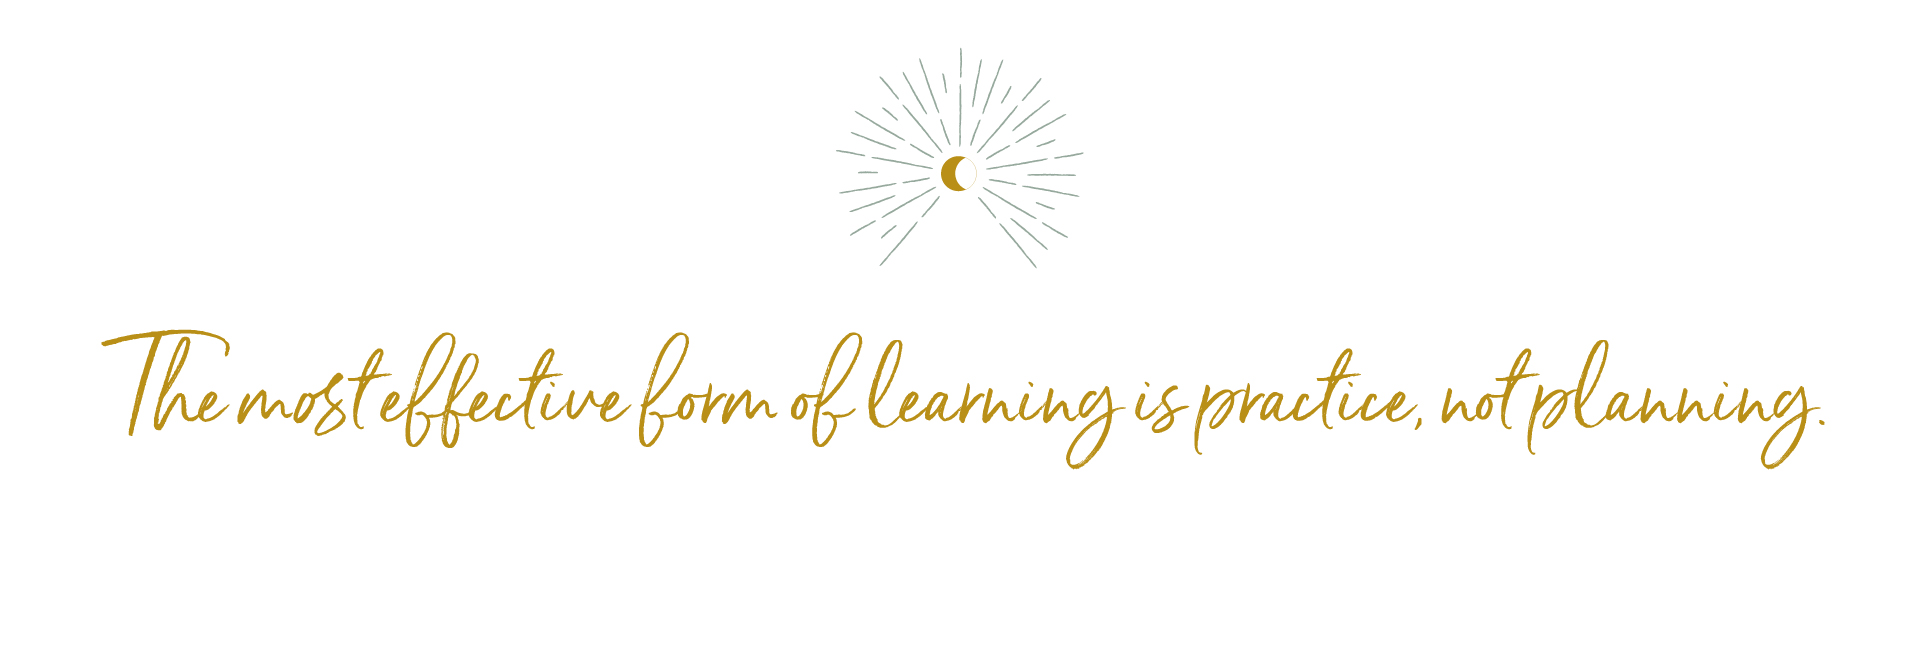 The most effective form of learning is practice, not planning. -niyama